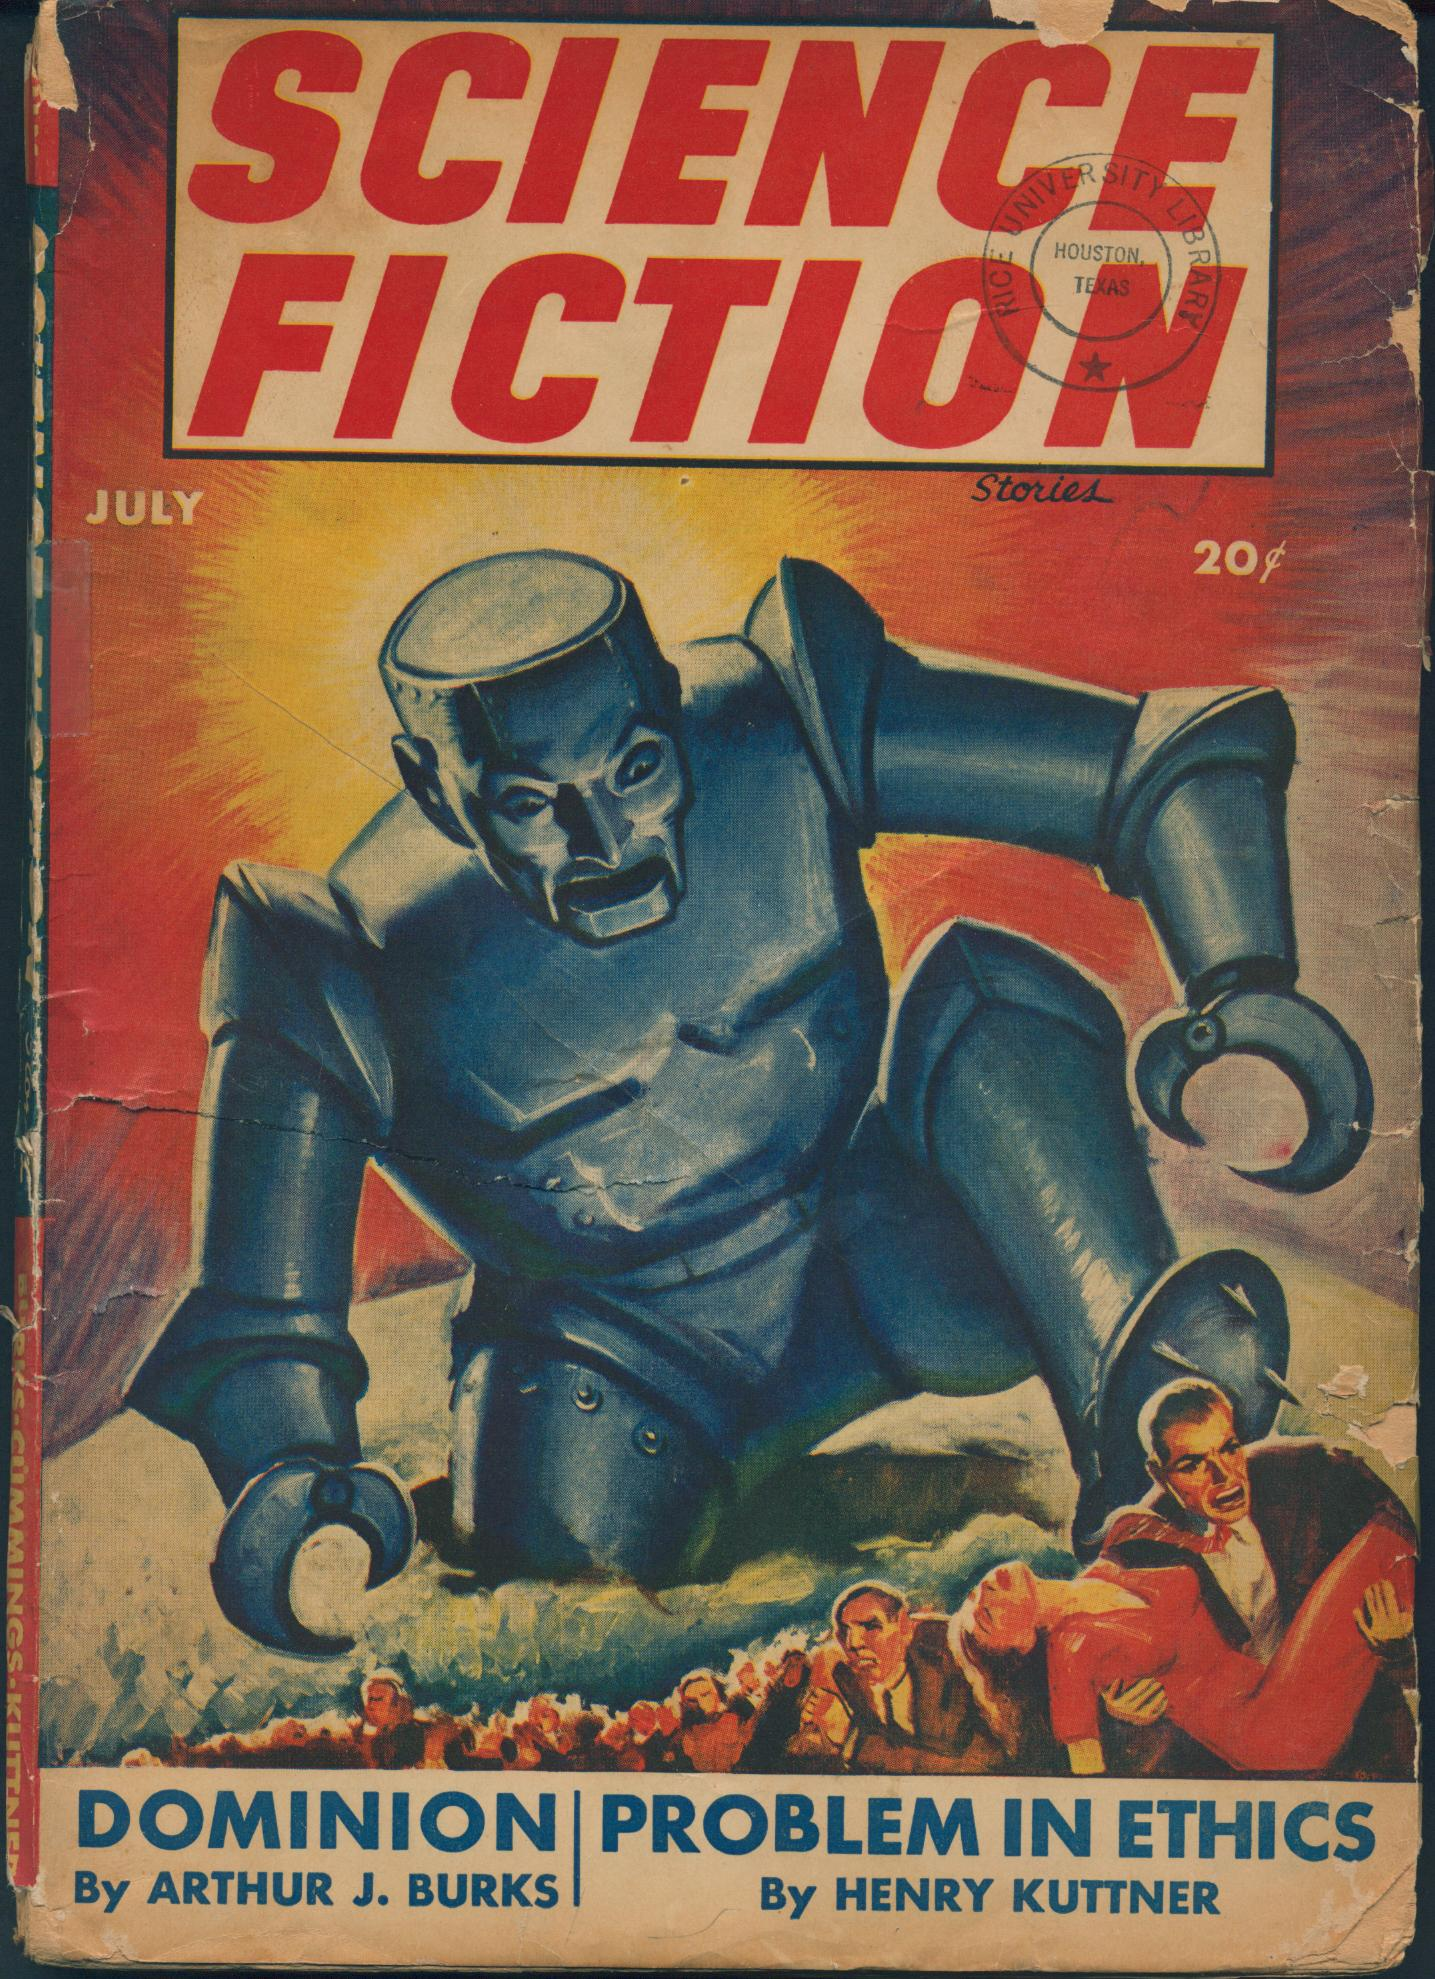 Cover of Science Fiction, vol 3 no 5, showing a giant robot stomping its way through a crowd of fleeing humans.